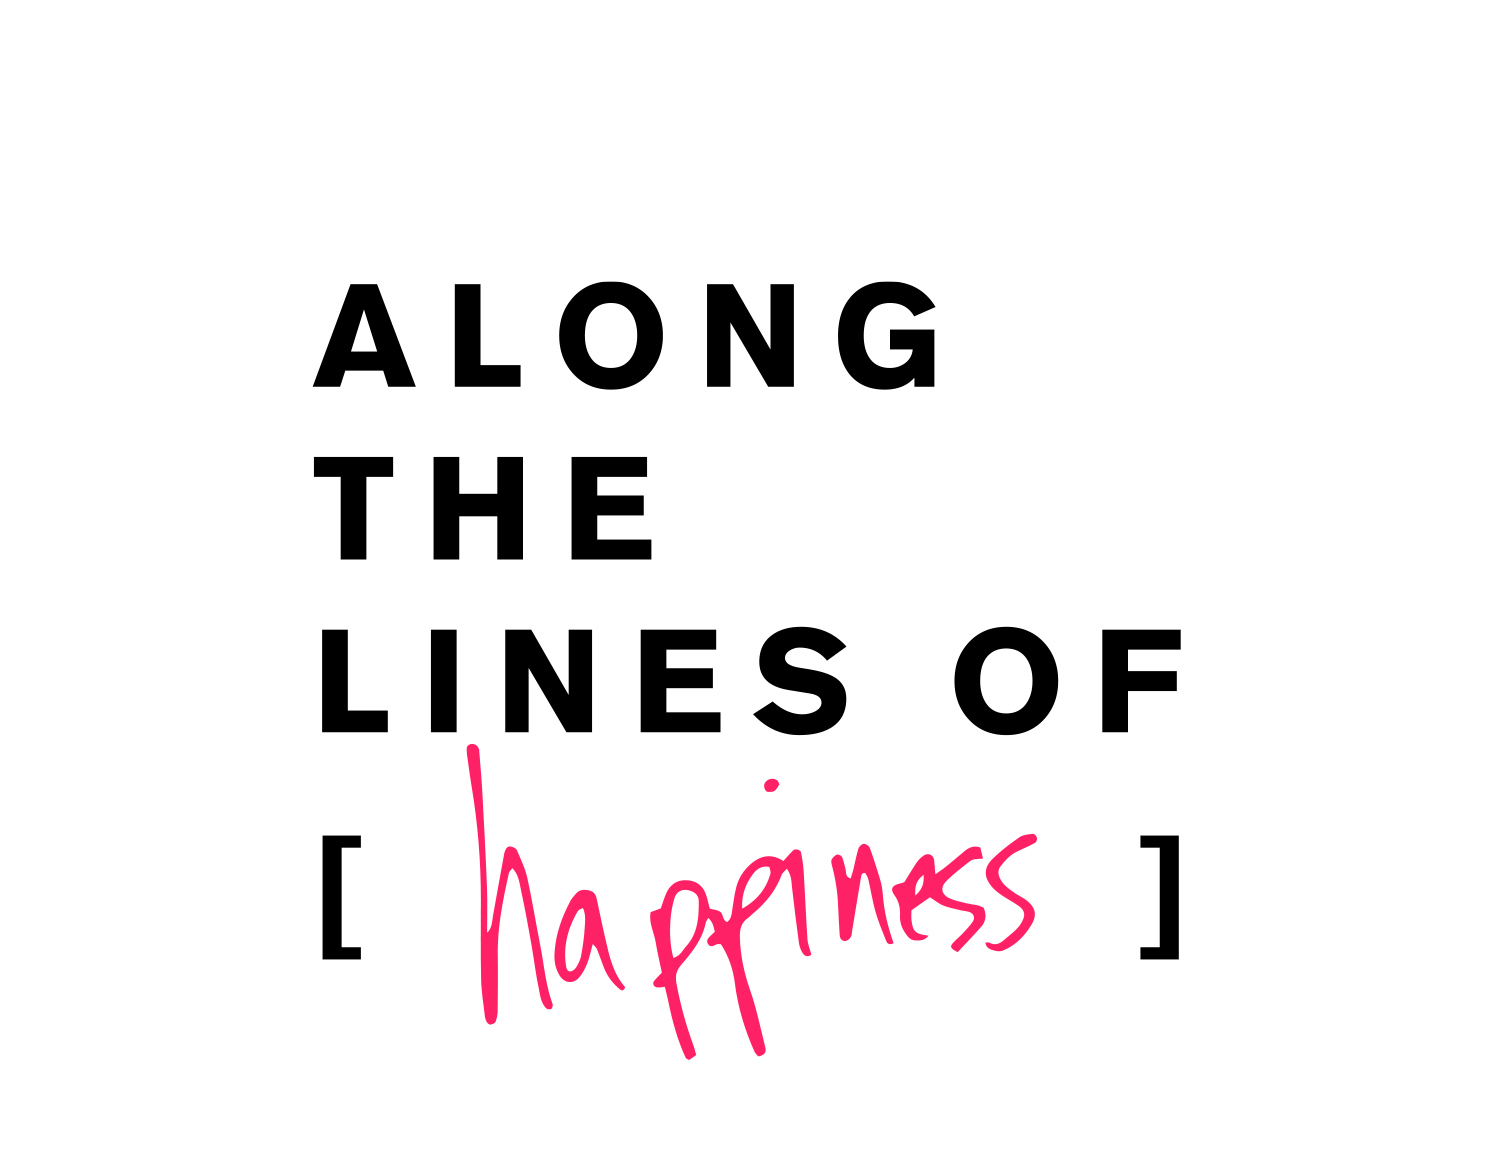 ALONG THE LINES OF HAPPINESS